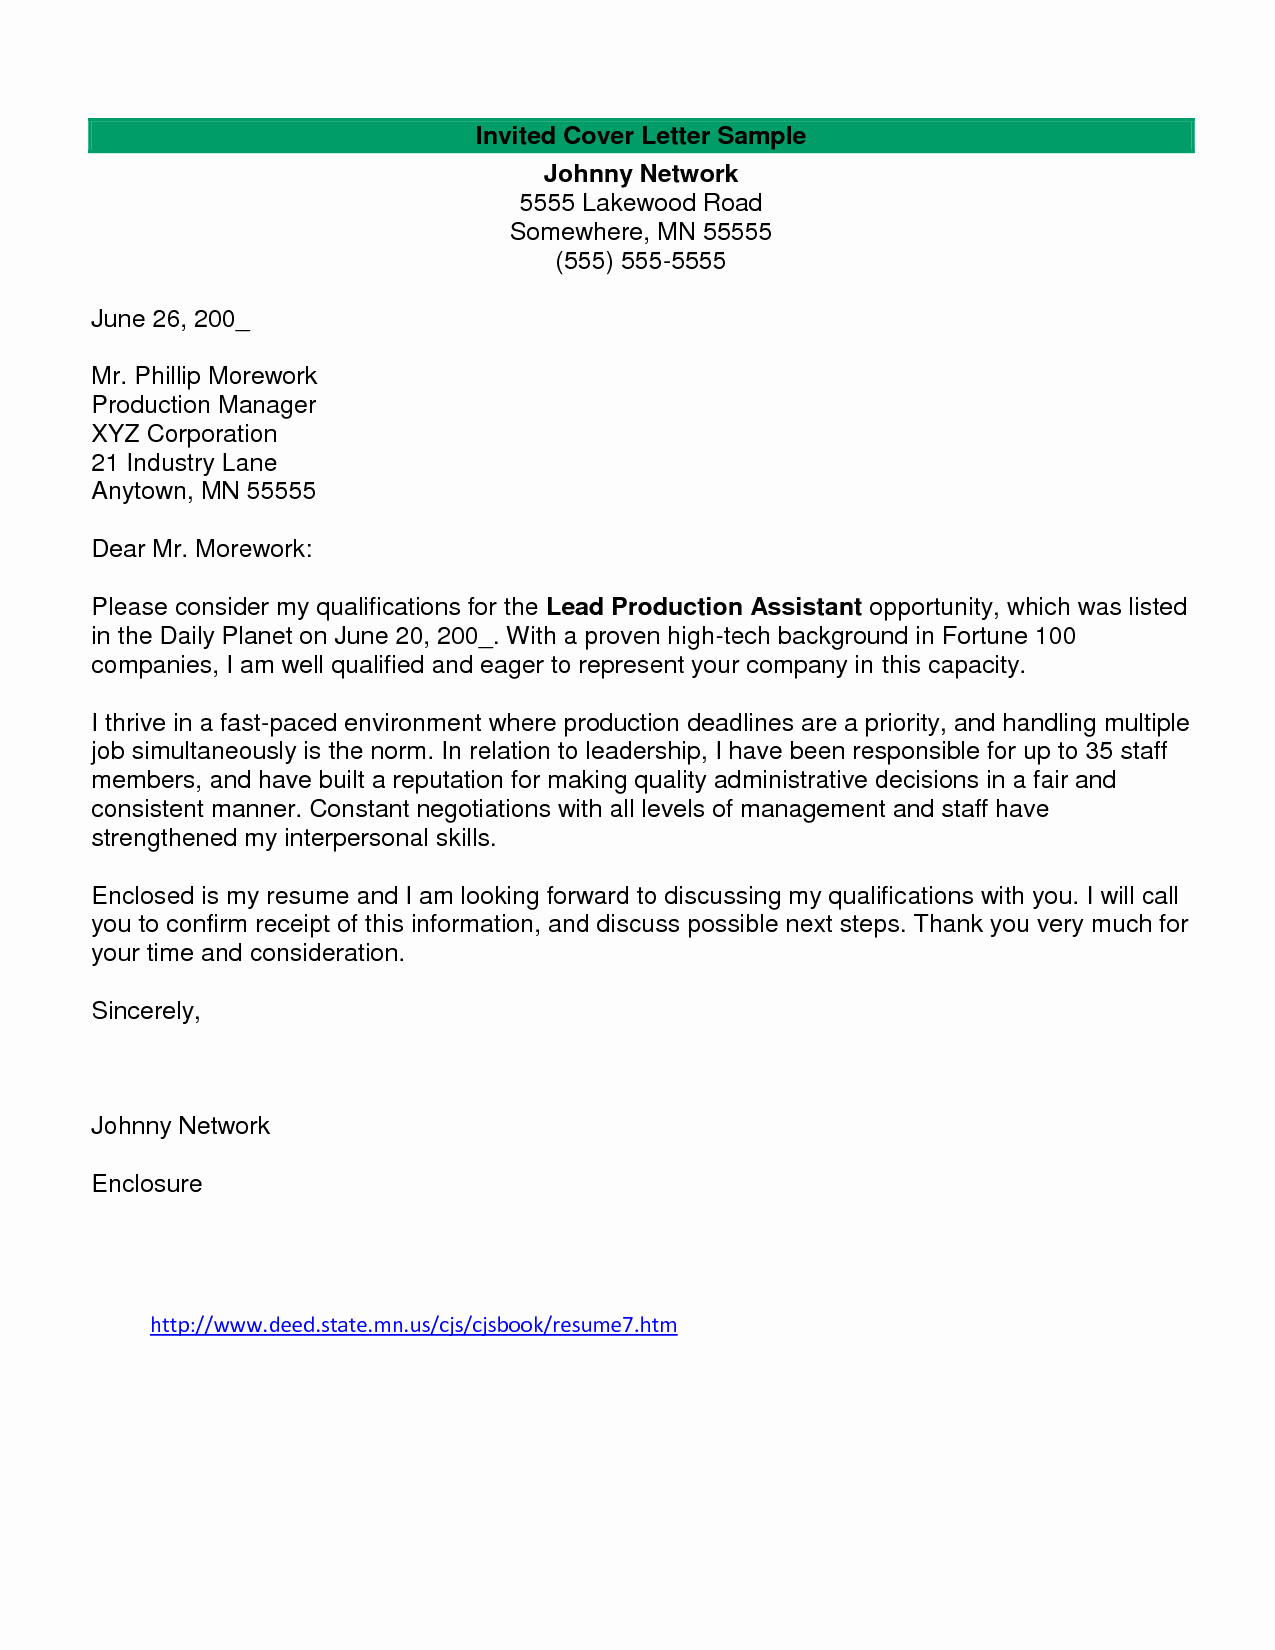 film production cover letter examples